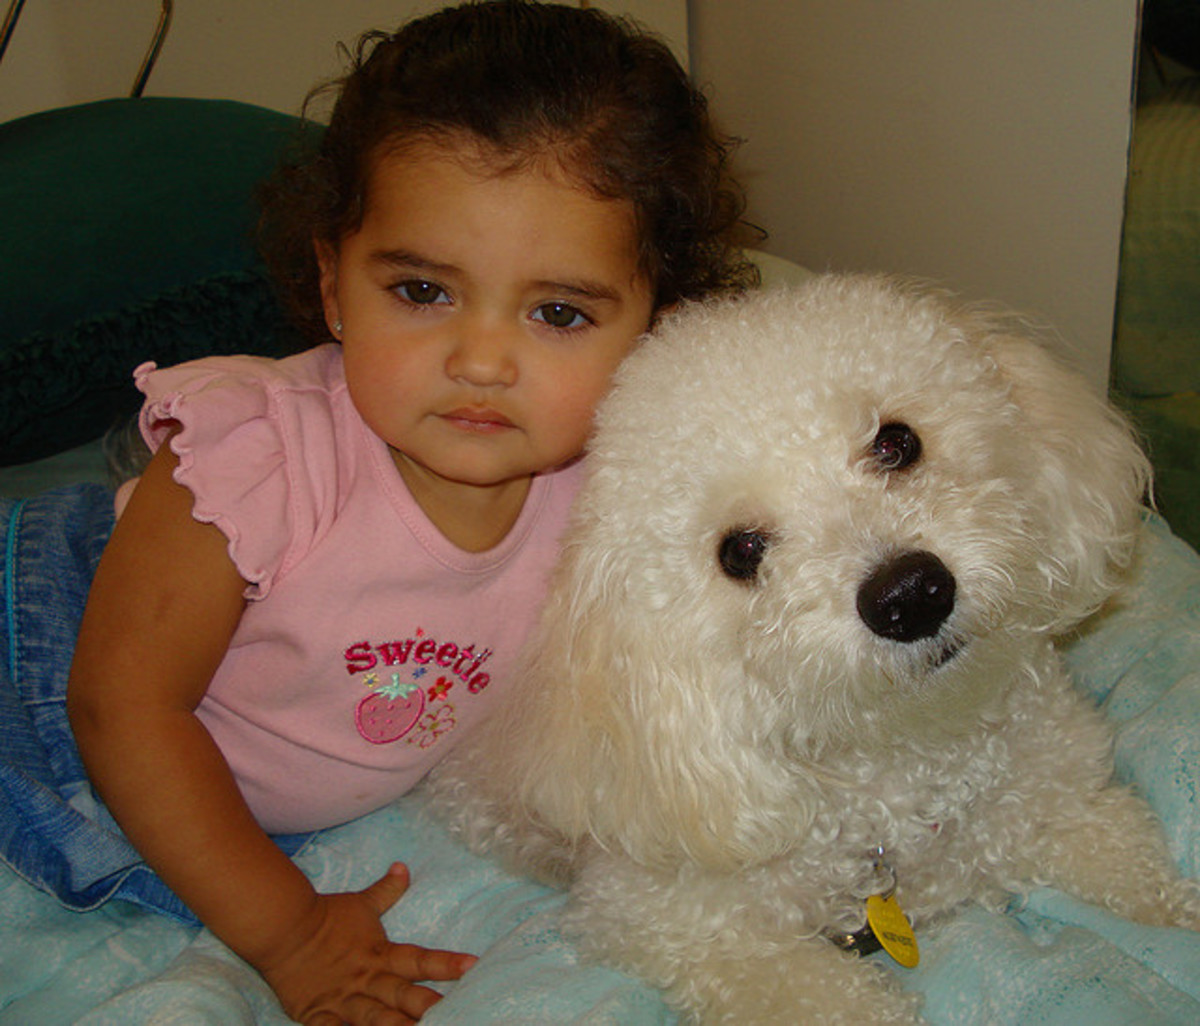 The Bichon is small enough to be good in an apartment and does not spread many allergens.